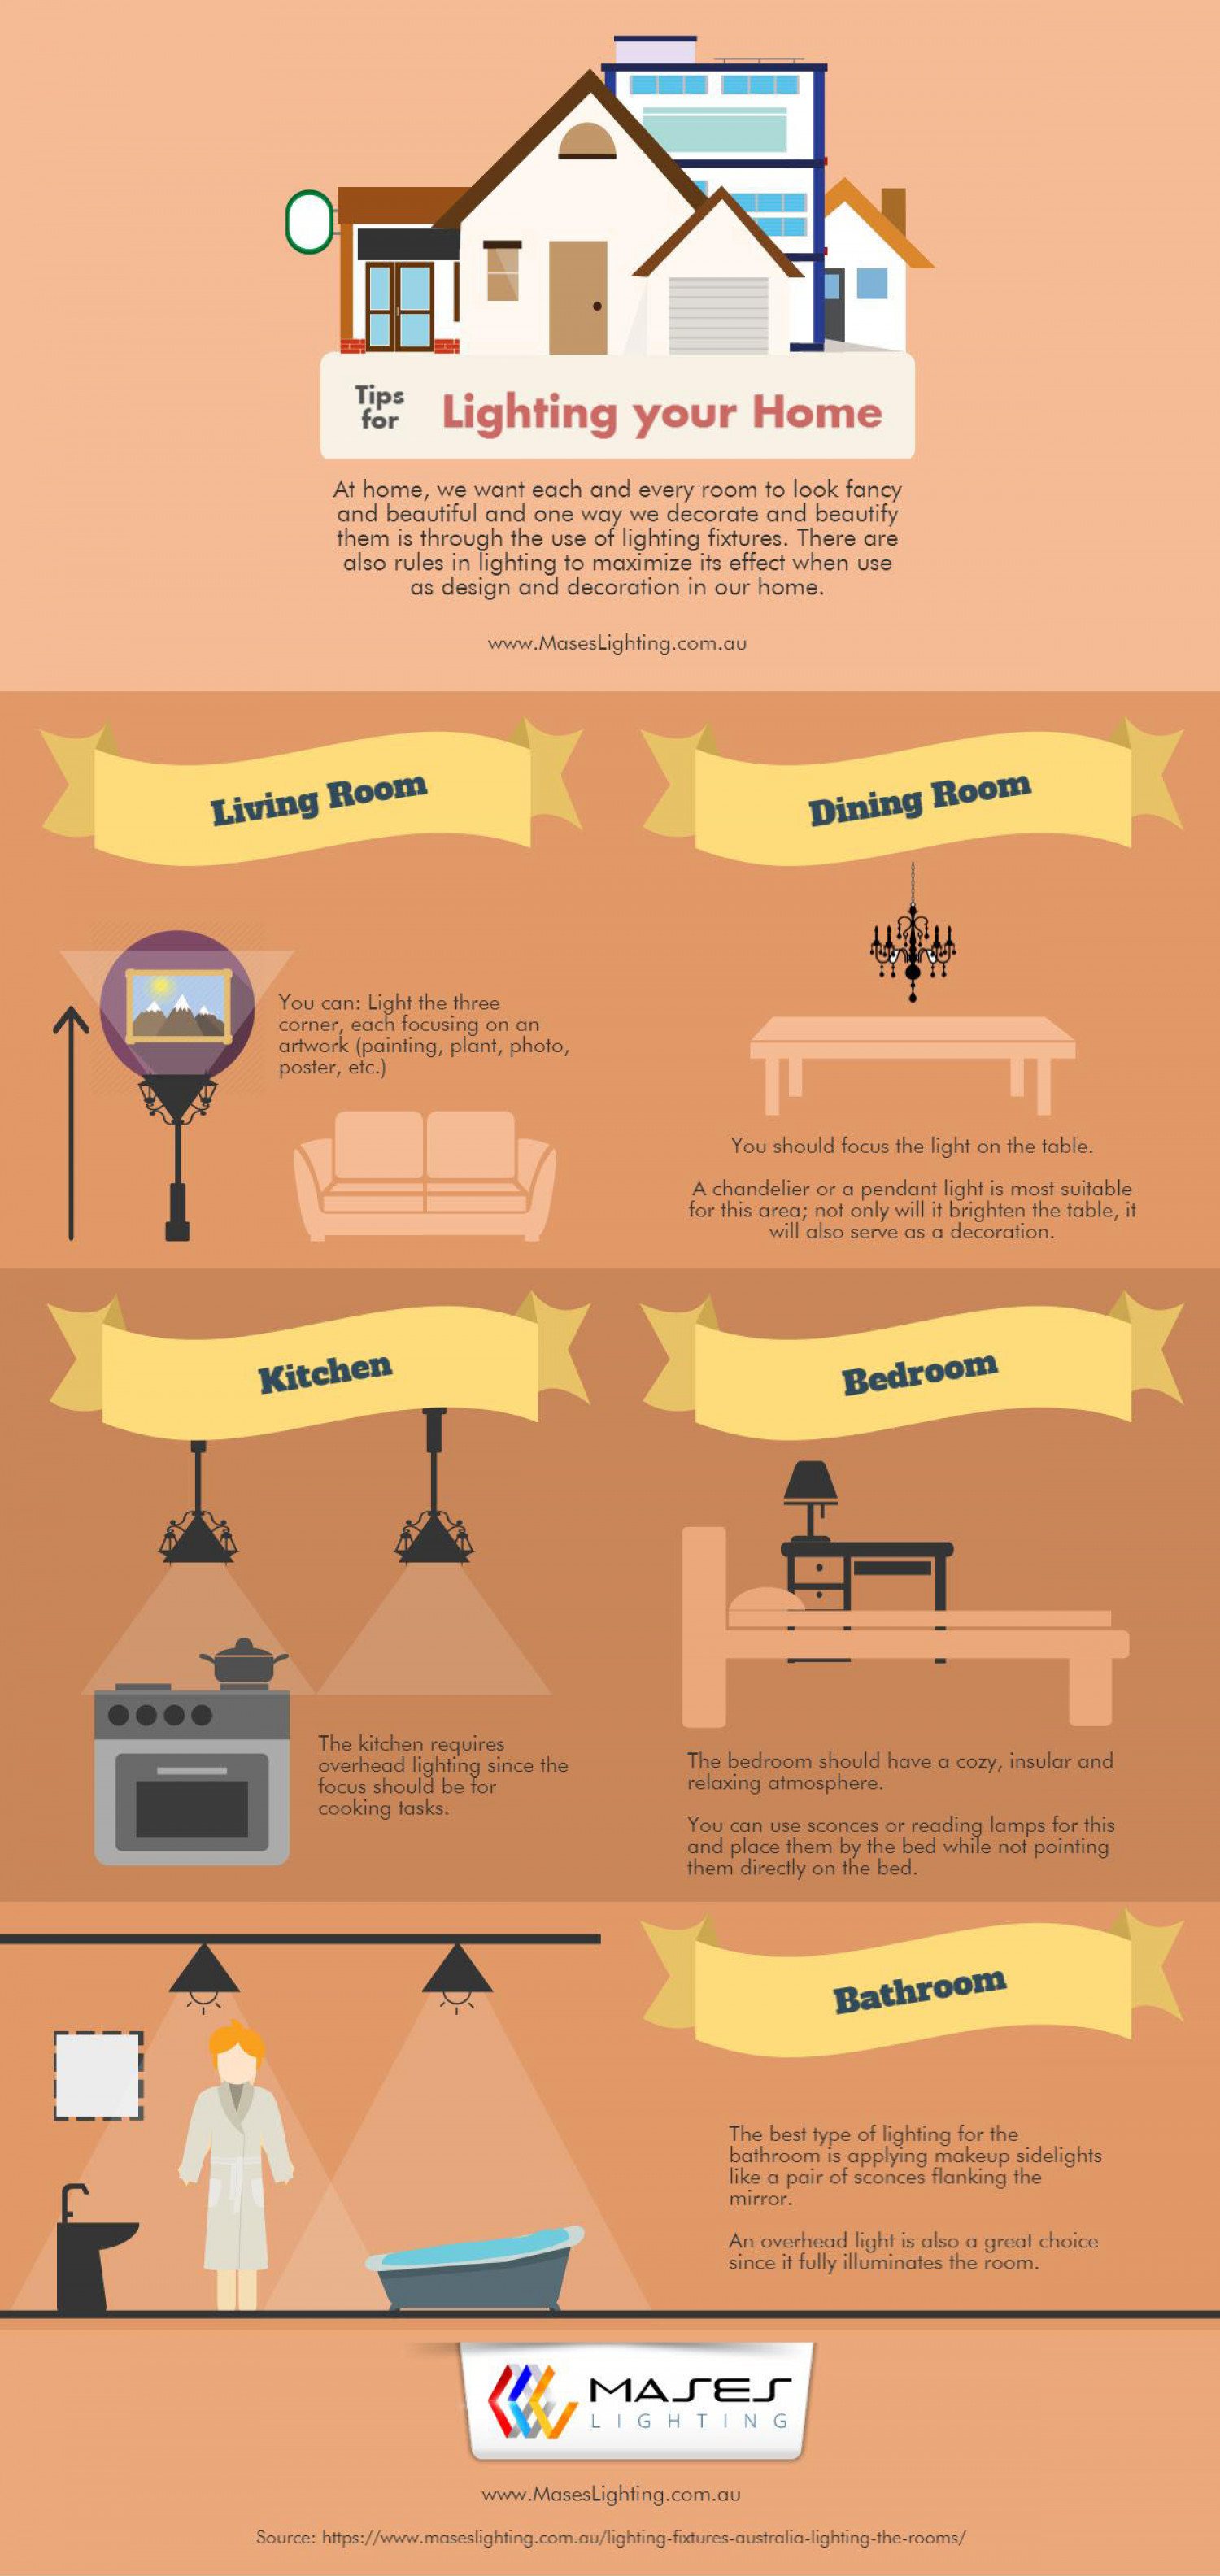 lighting for your home. tips for lighting your home infographic